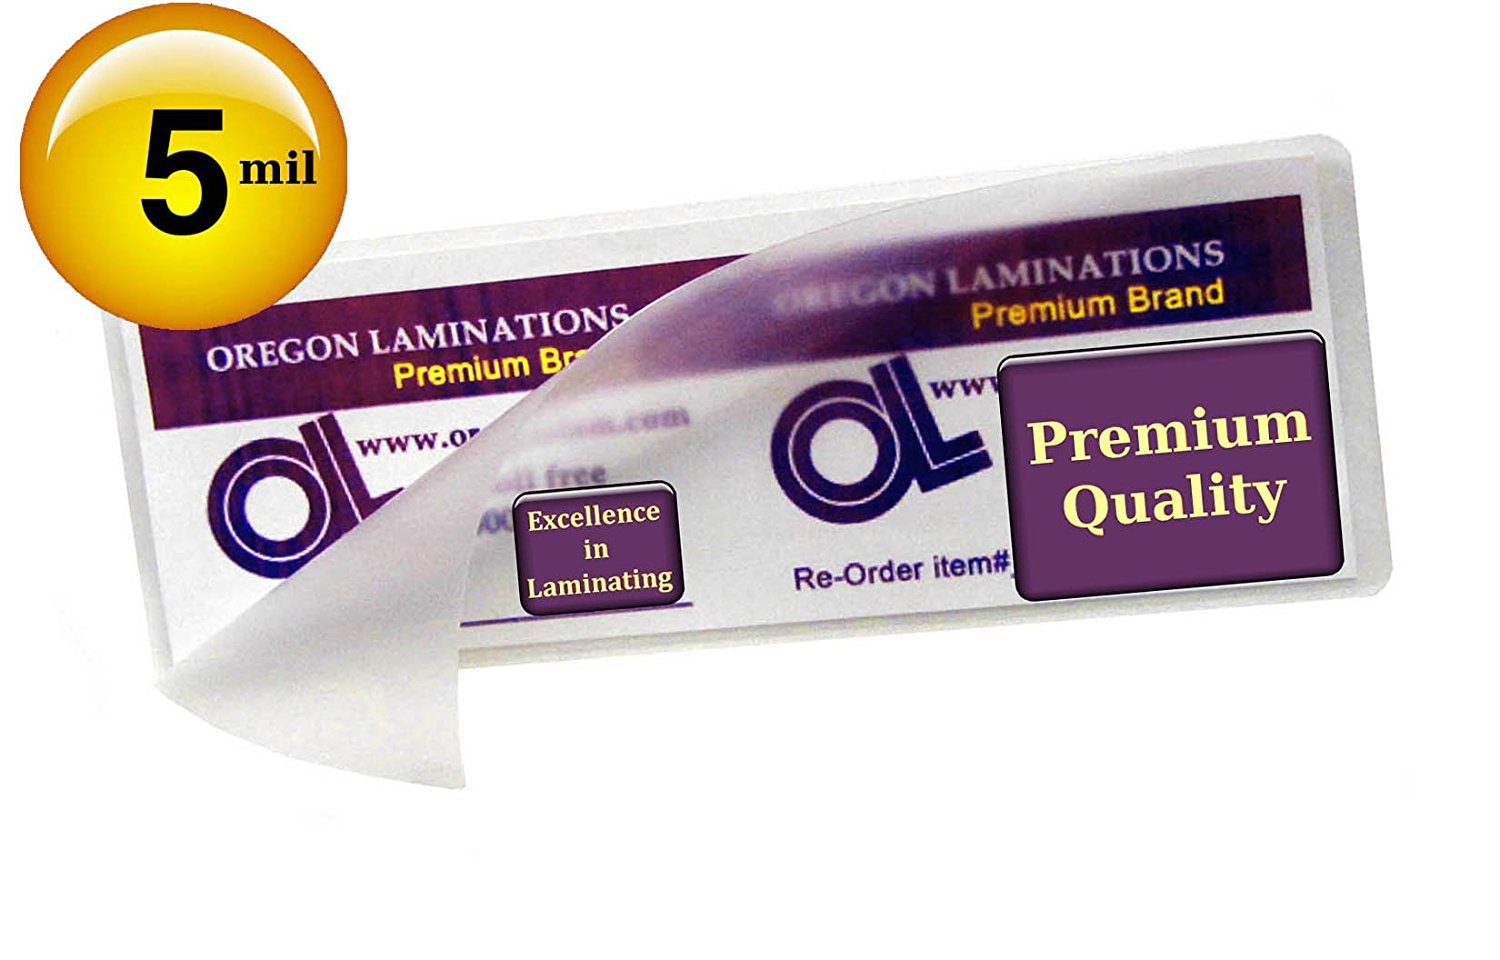 Binders & Binding Systems Qty 1000 OLP 3 Mil Letter Laminating Pouches 9 x 11-1/2 Hot Laminator Sleeves